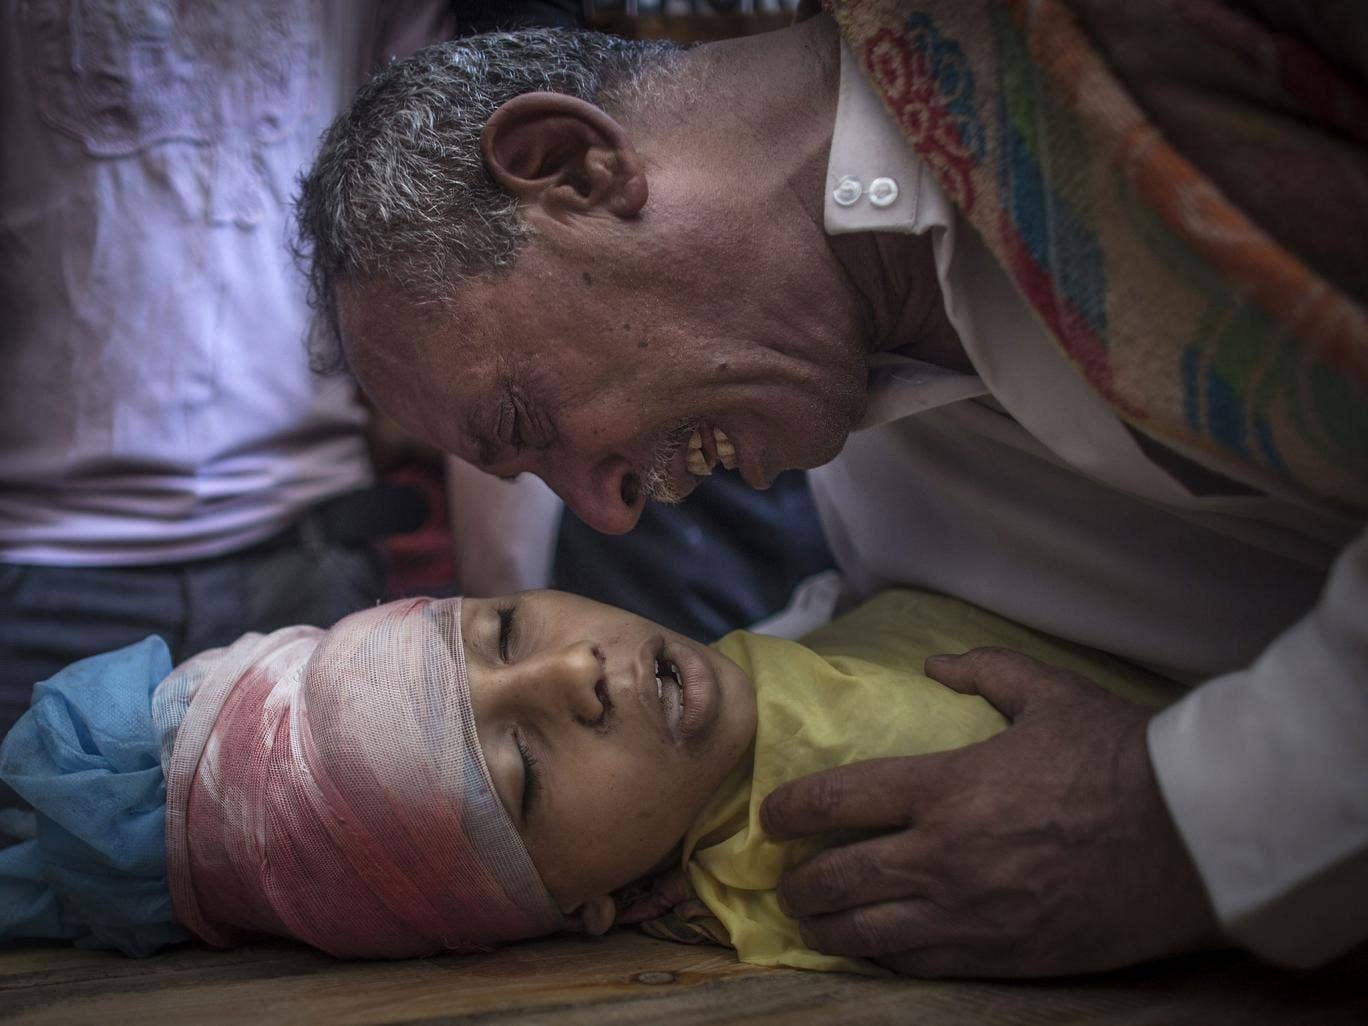 The father of 10-year-old Ibraheem al-Dawawsa cries over the dead body of his son in Gaza City